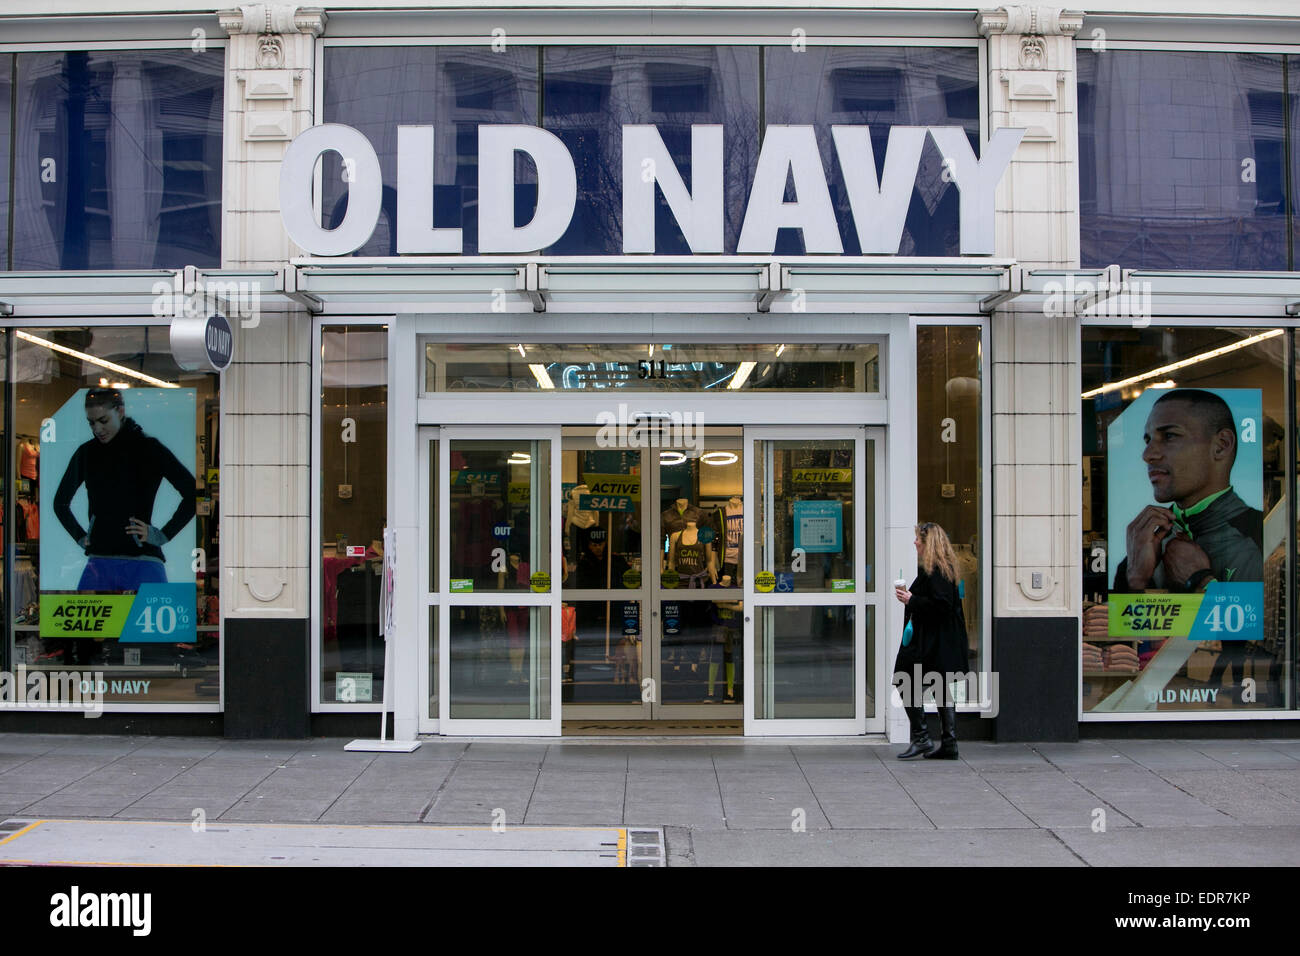 Navy clothes store